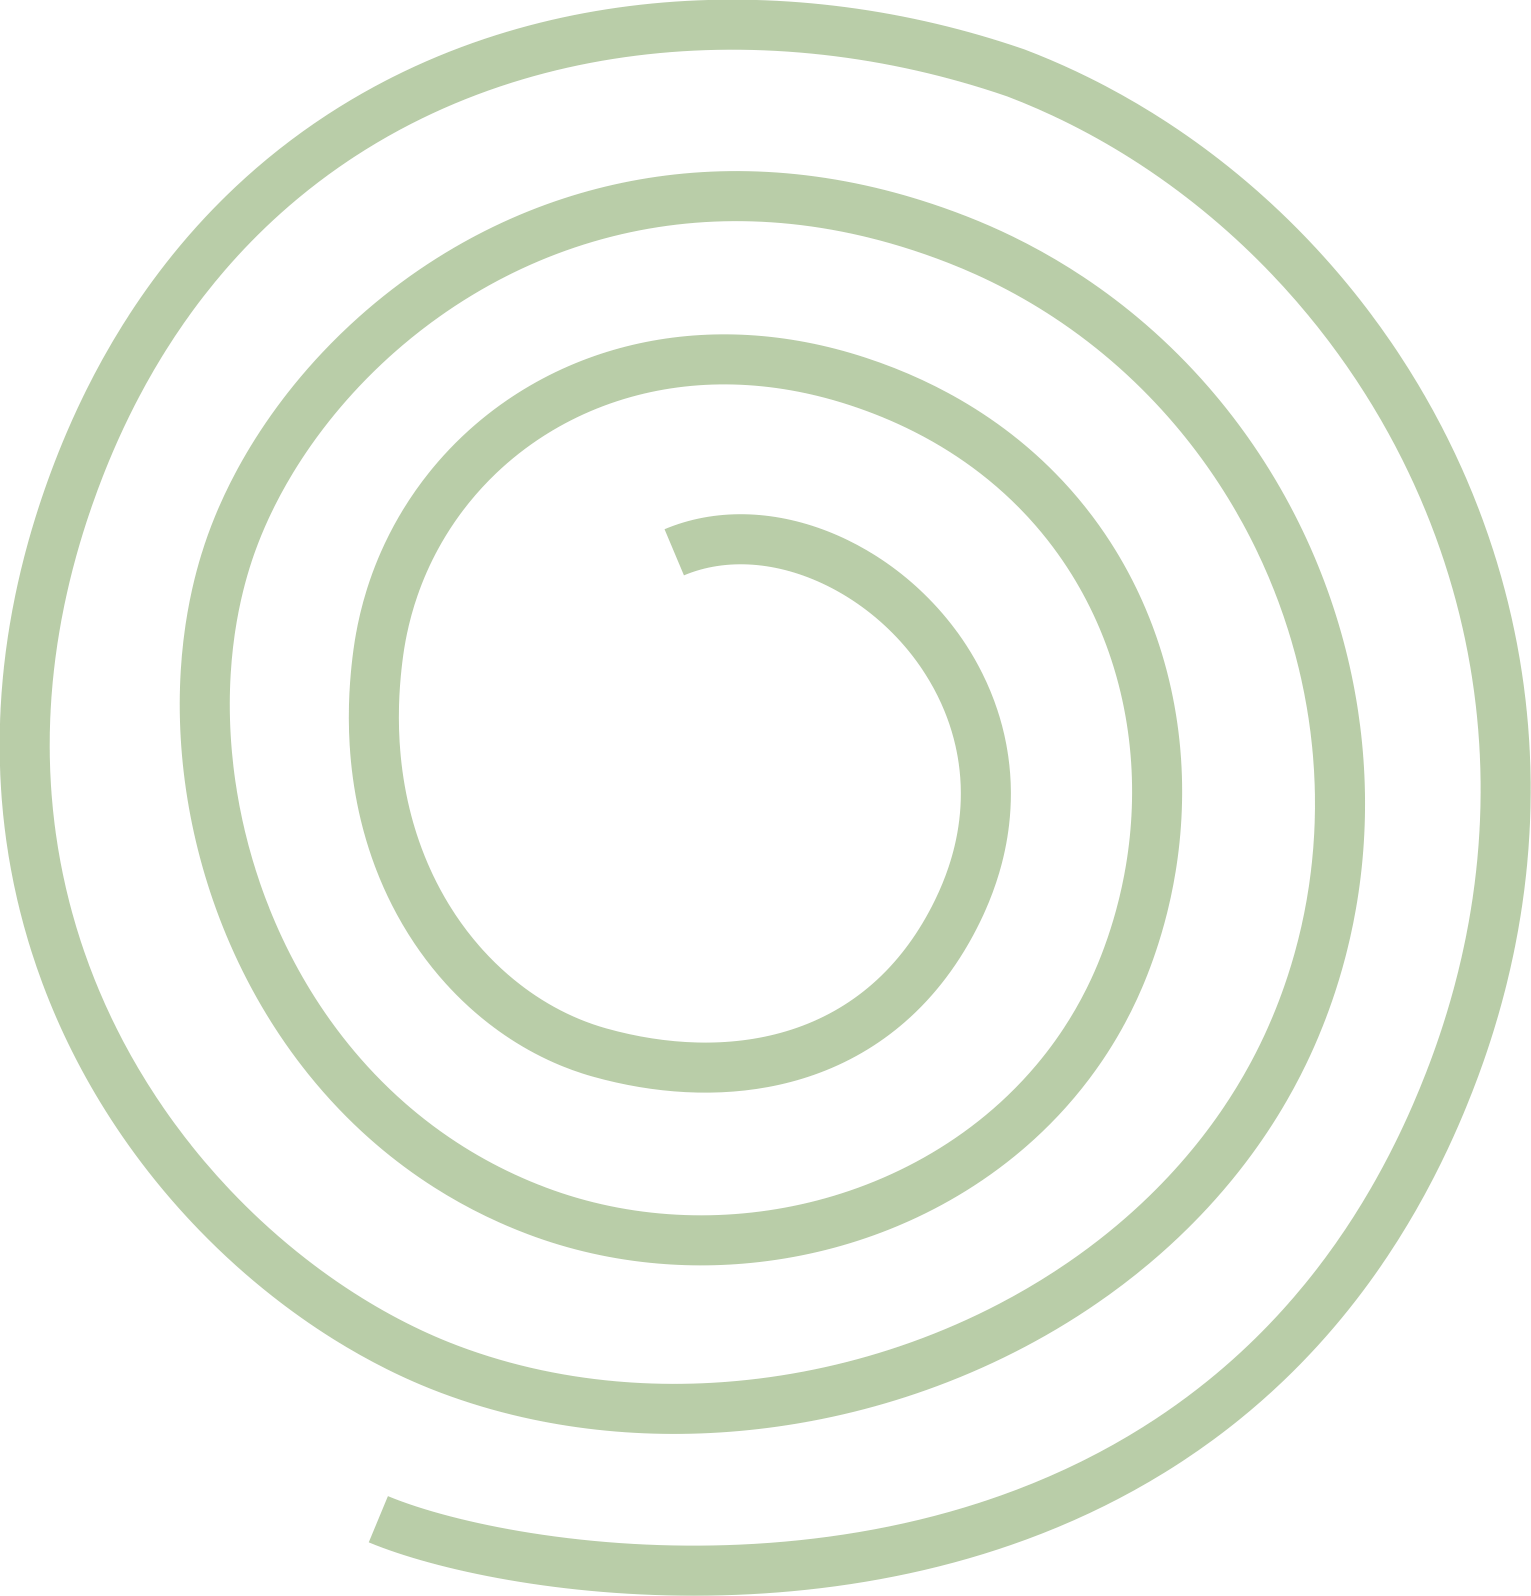 Spirale Png - ClipArt Best